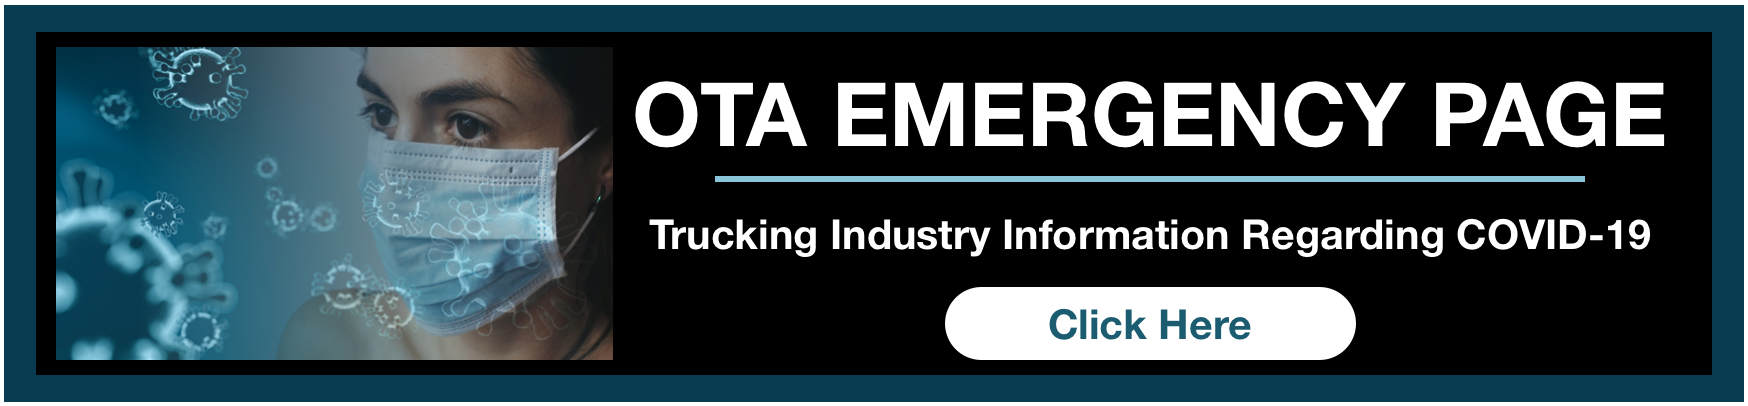 OTA Emergency Page for Trucking Industry Information Regarding COVID-19